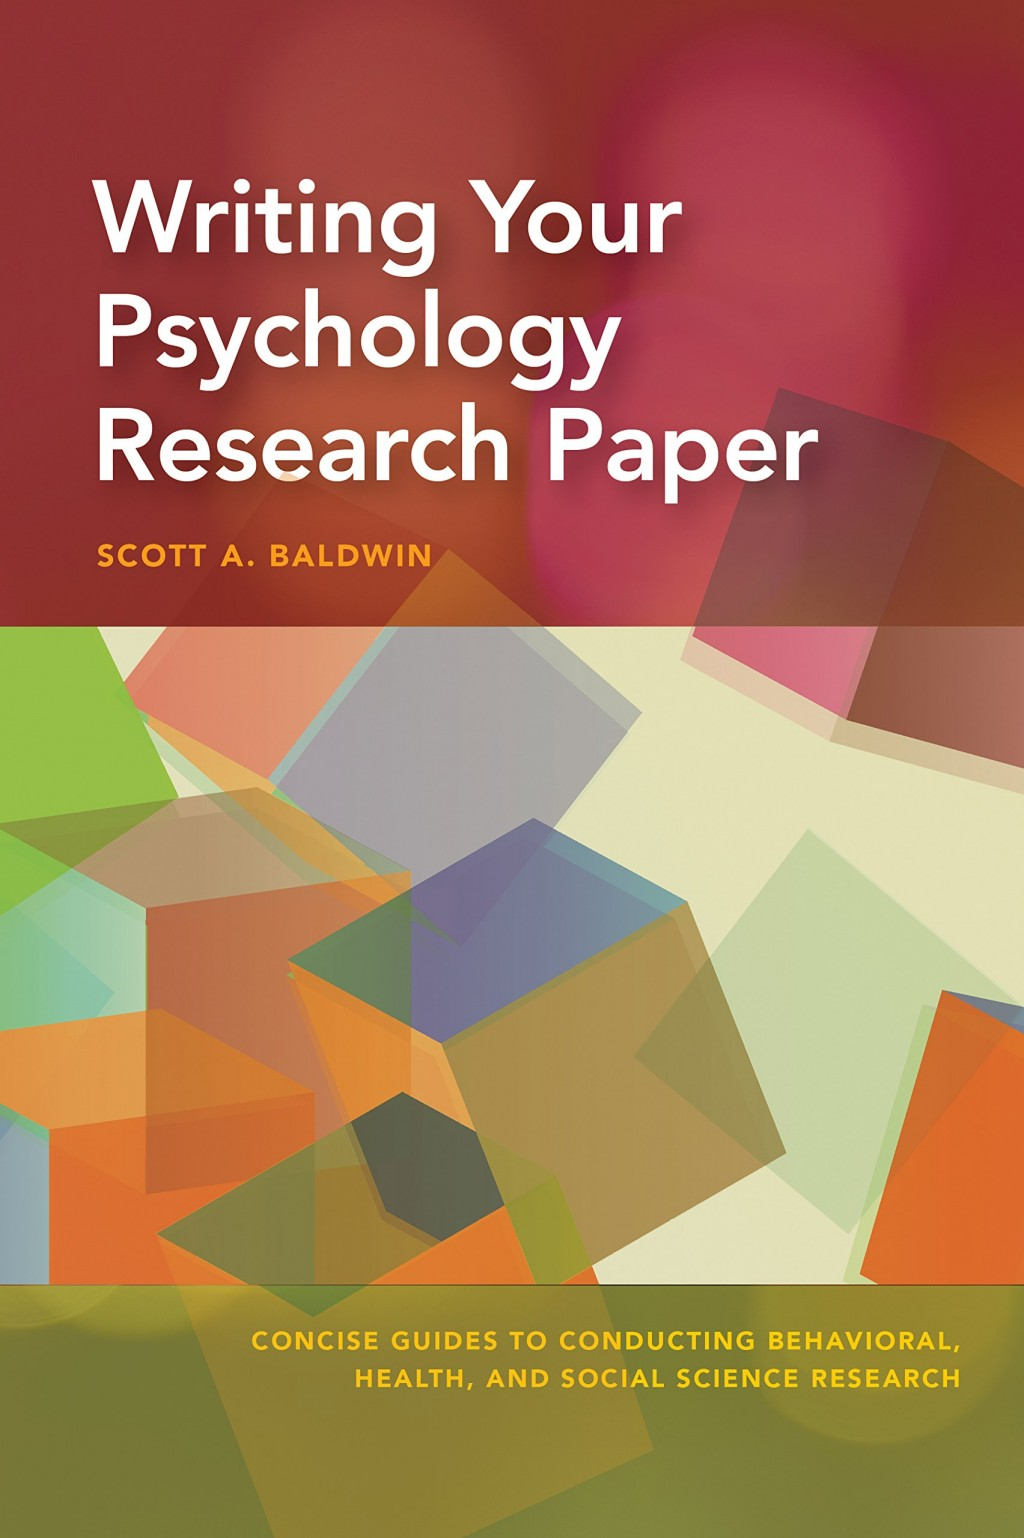 010 Psychology Research Paper On Anxiety Marvelous Large